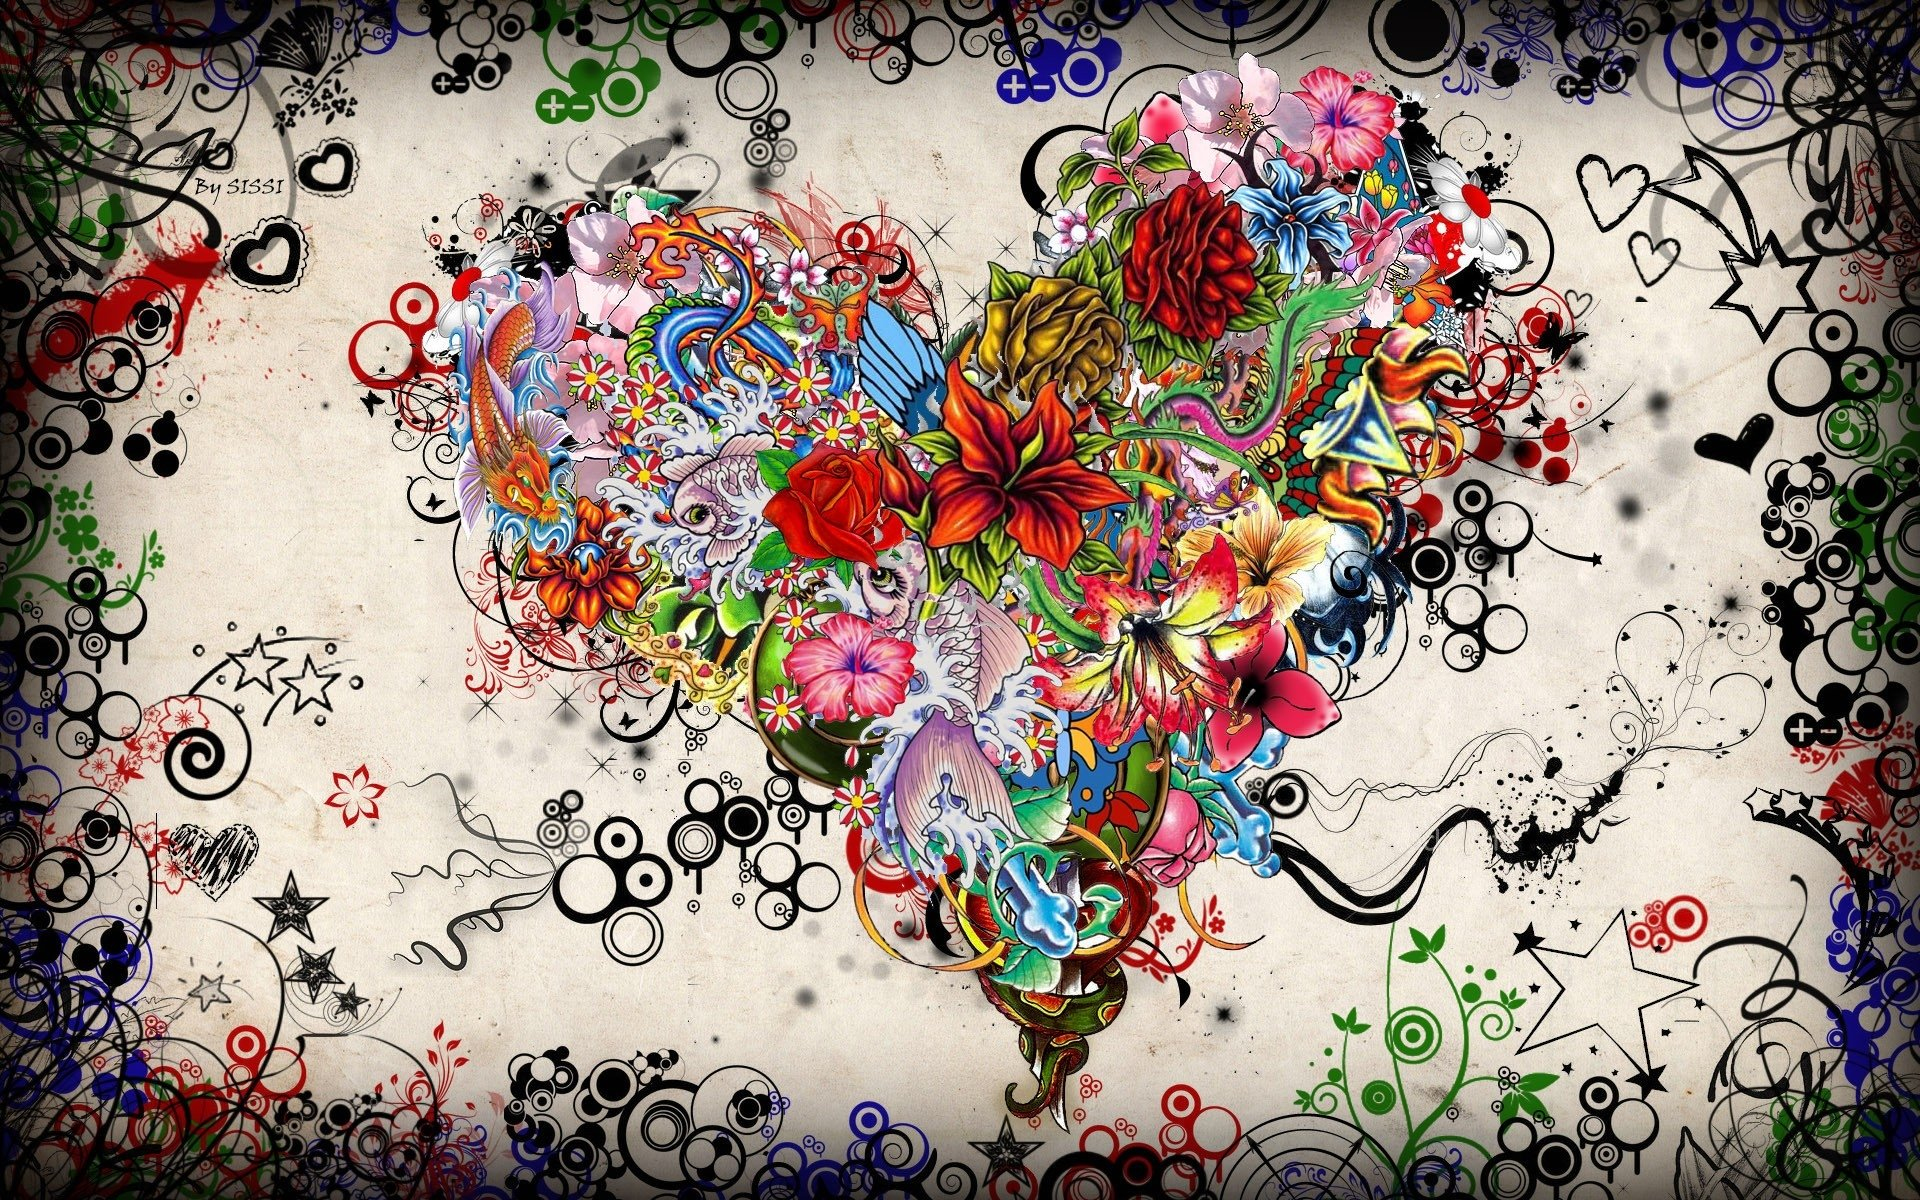 Artistic - Heart  Psychedelic Valentine's Day Fantasy Wallpaper